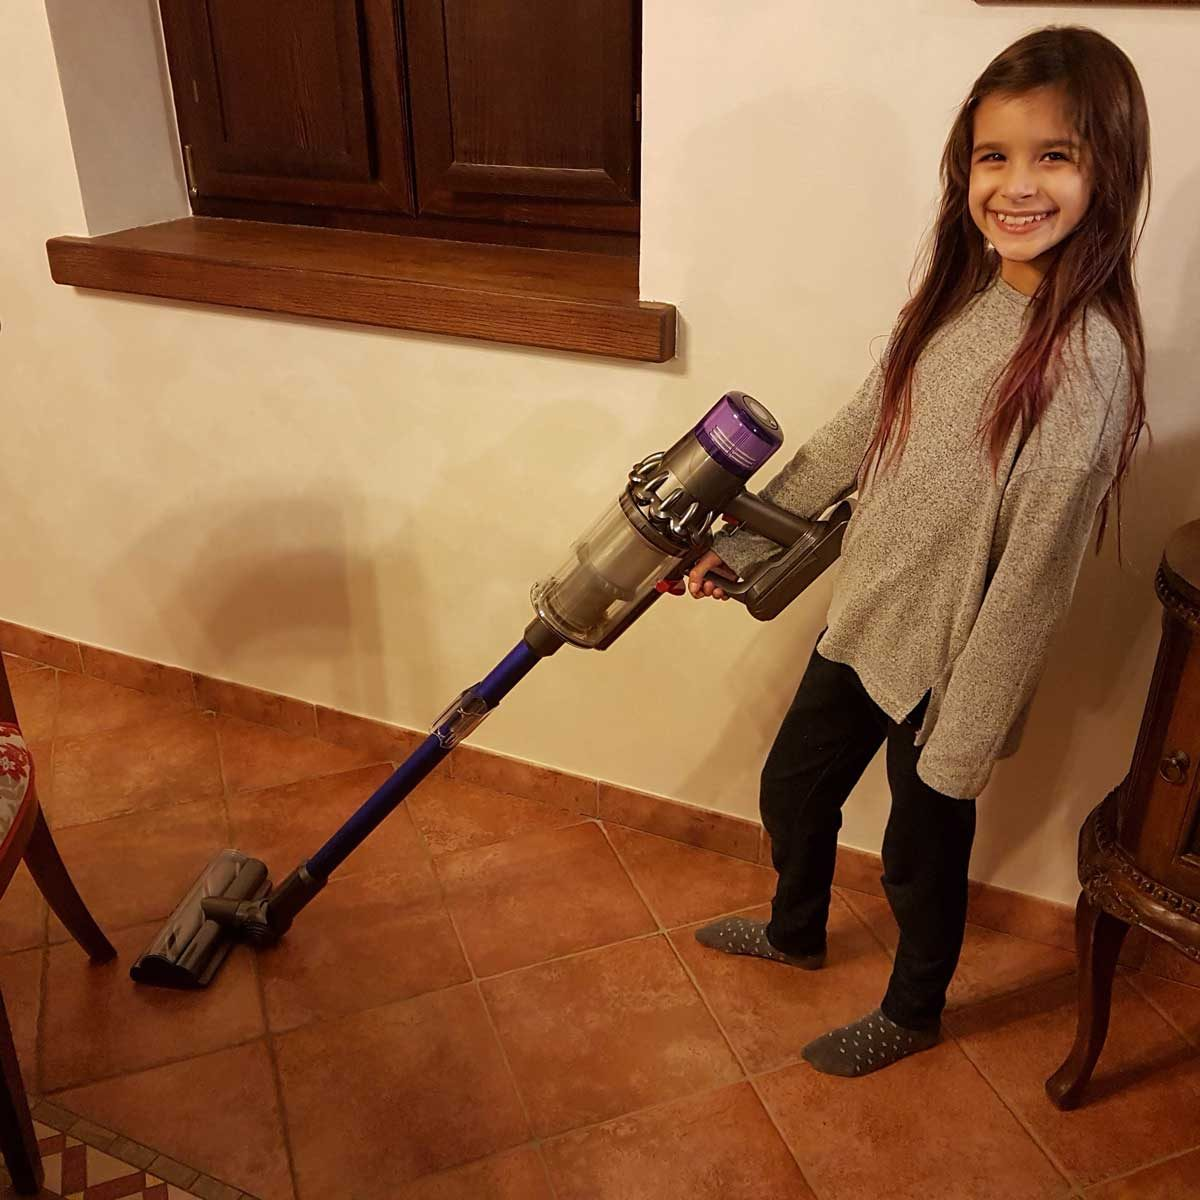 Girl using a Dyson vacuum